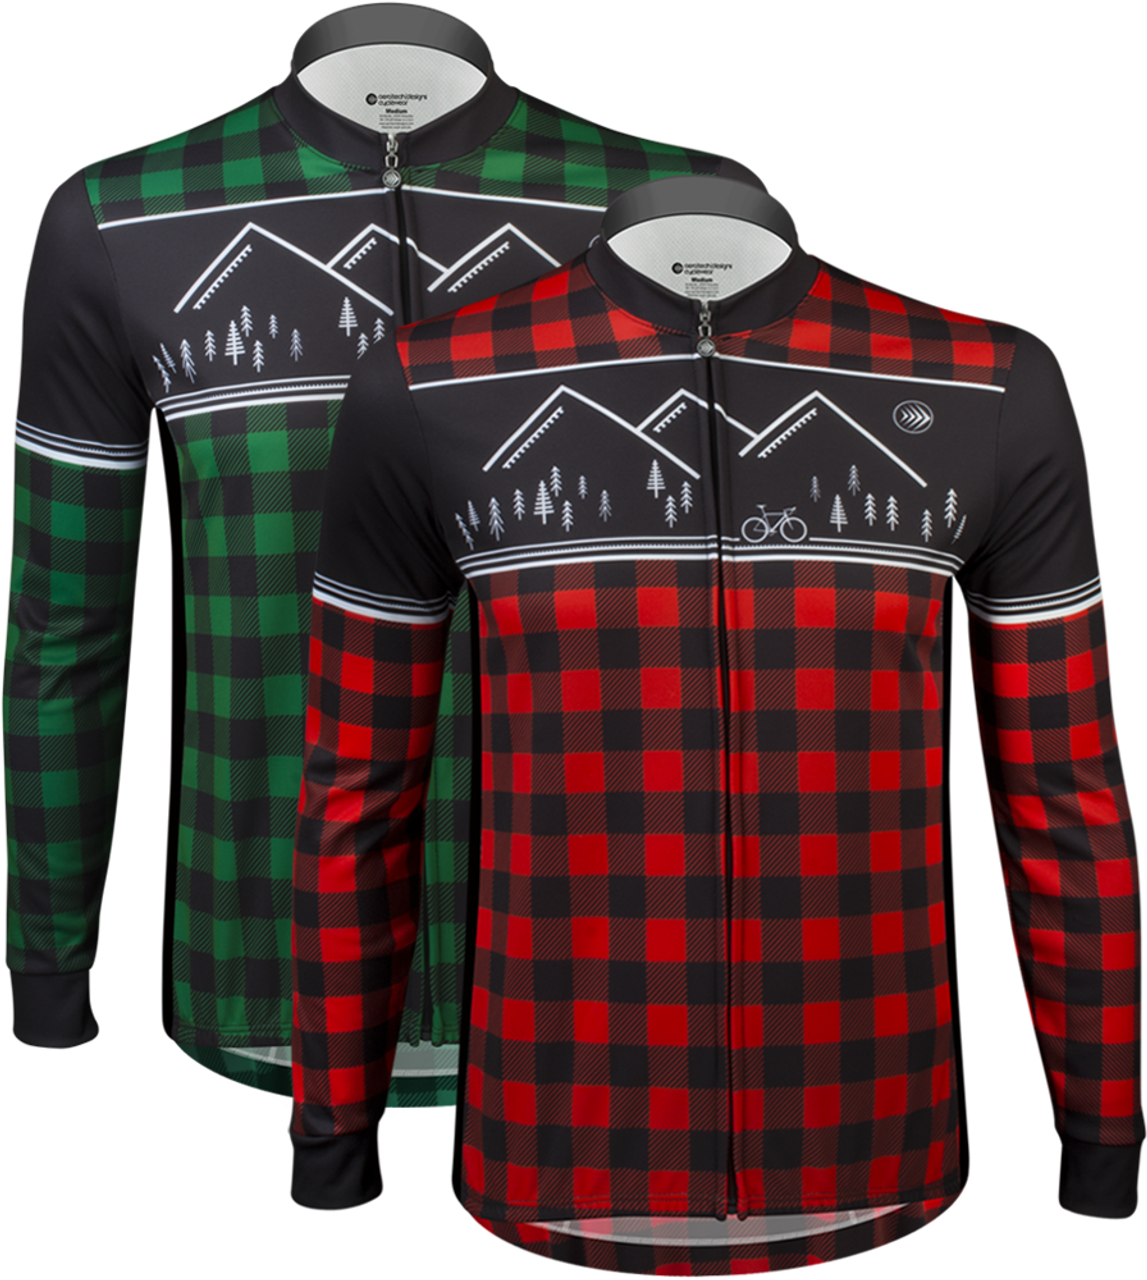 Aero Tech Long Sleeve Brushed Fleece Lumberjack Cycling Sprint Jersey Green  and Red Front Icon 8008e695d